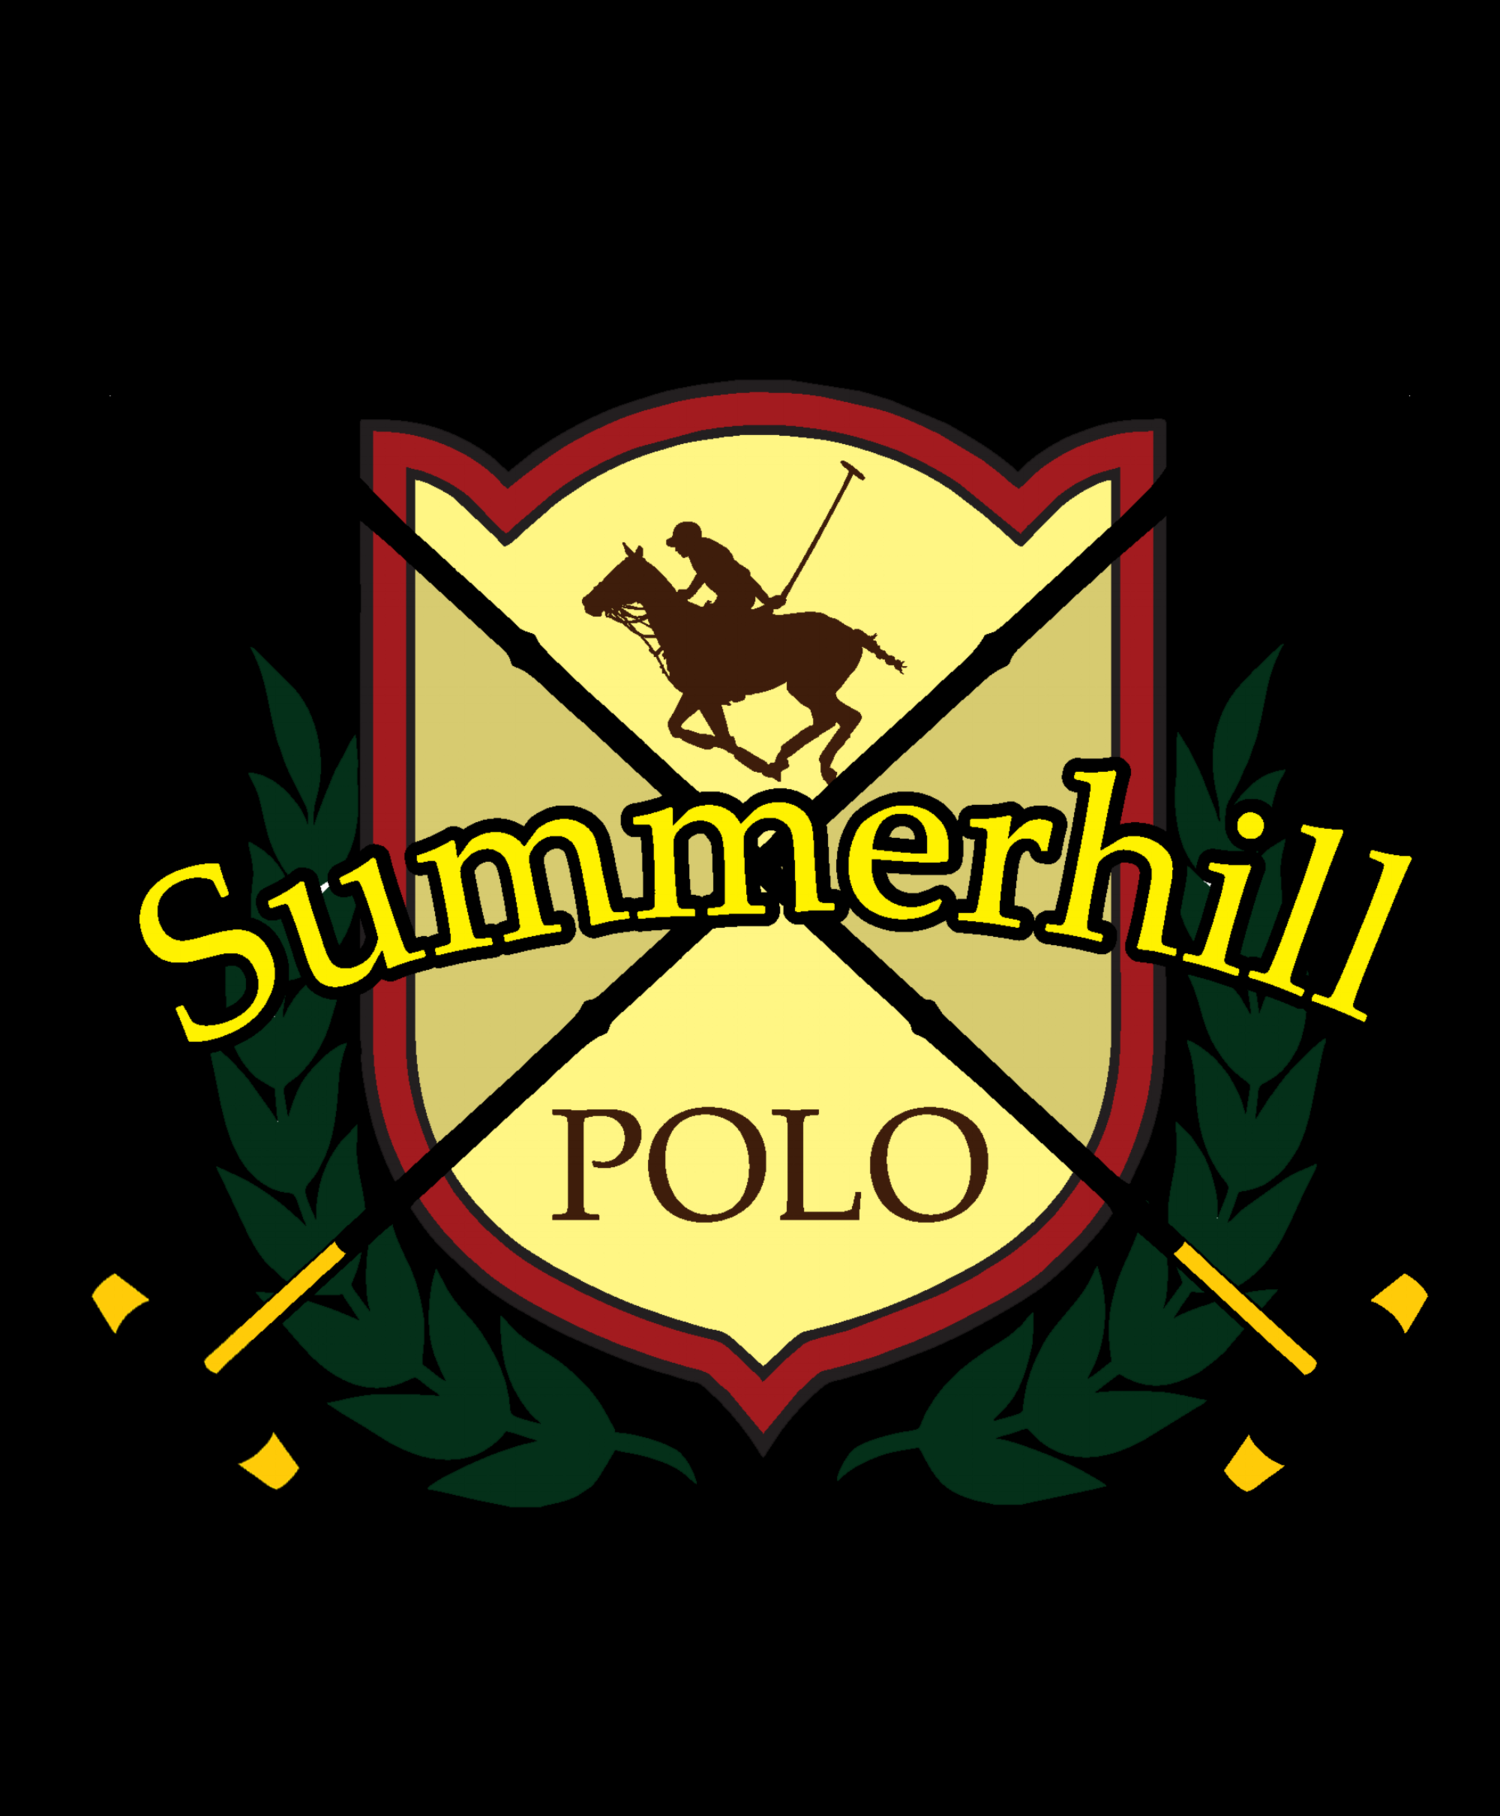 Summerhill Polo